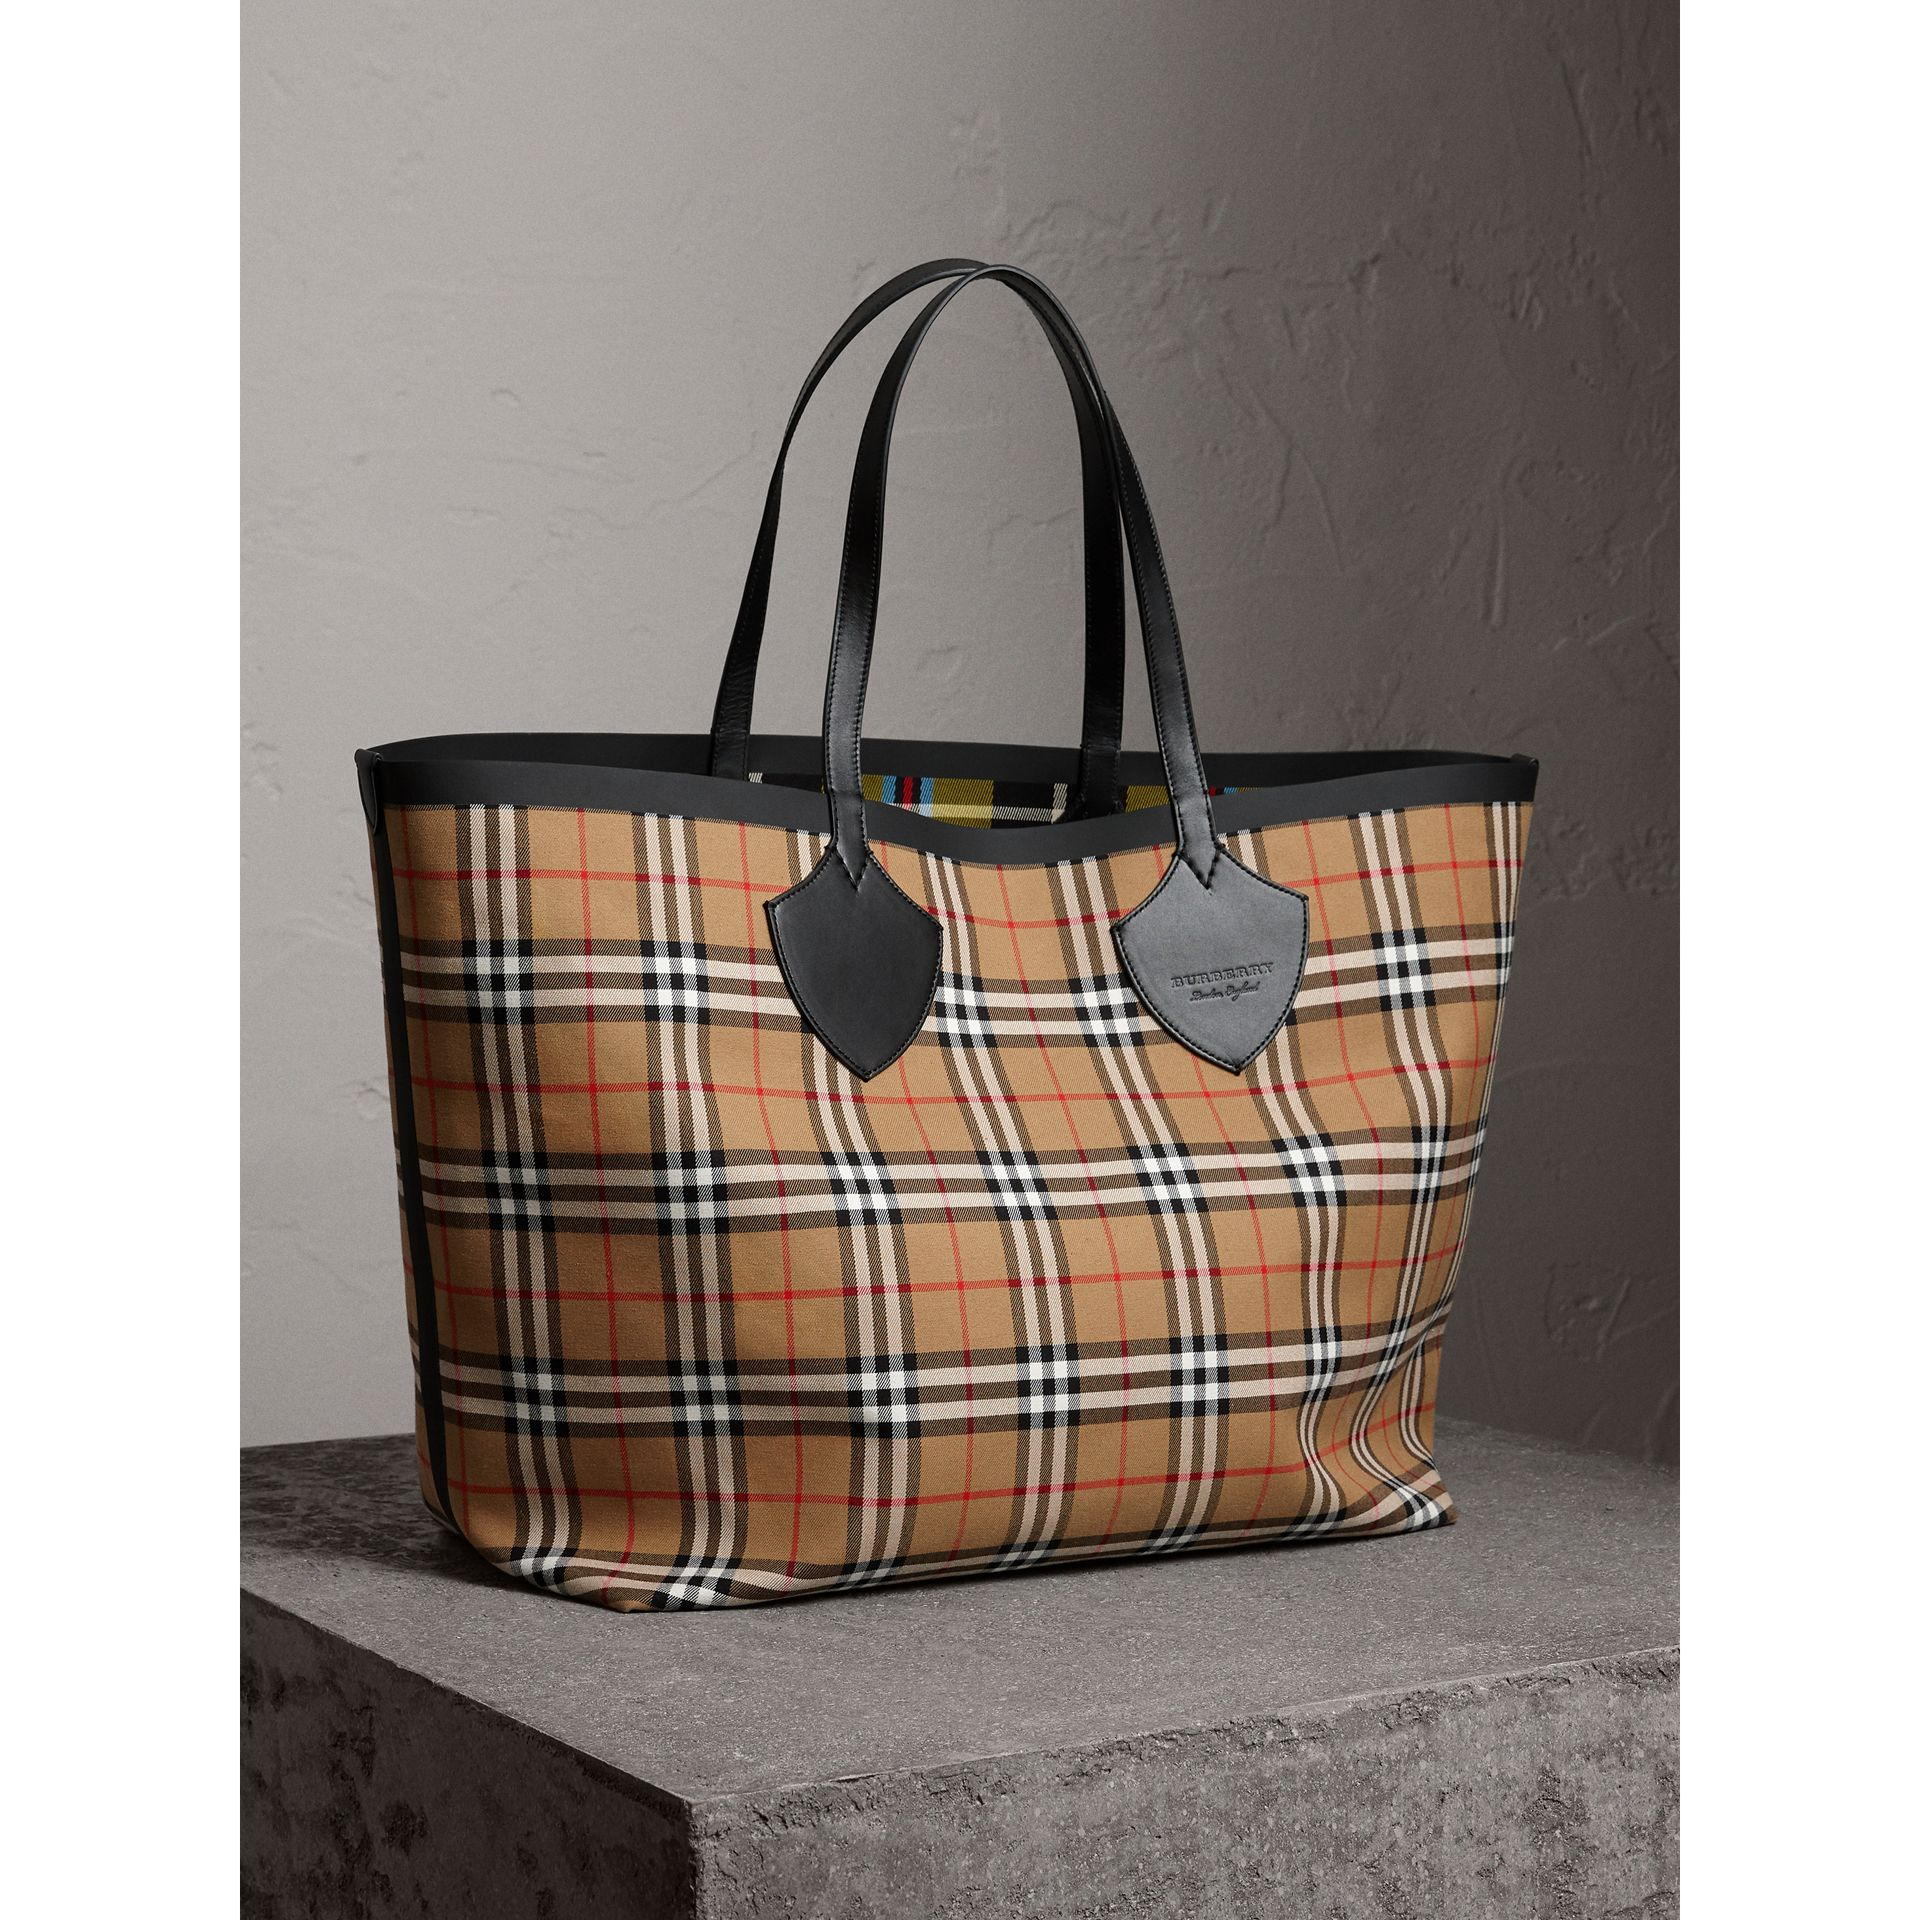 Sac tote The Giant réversible en coton à motif Vintage check (Jaune Antique) | Burberry - photo de la galerie 5